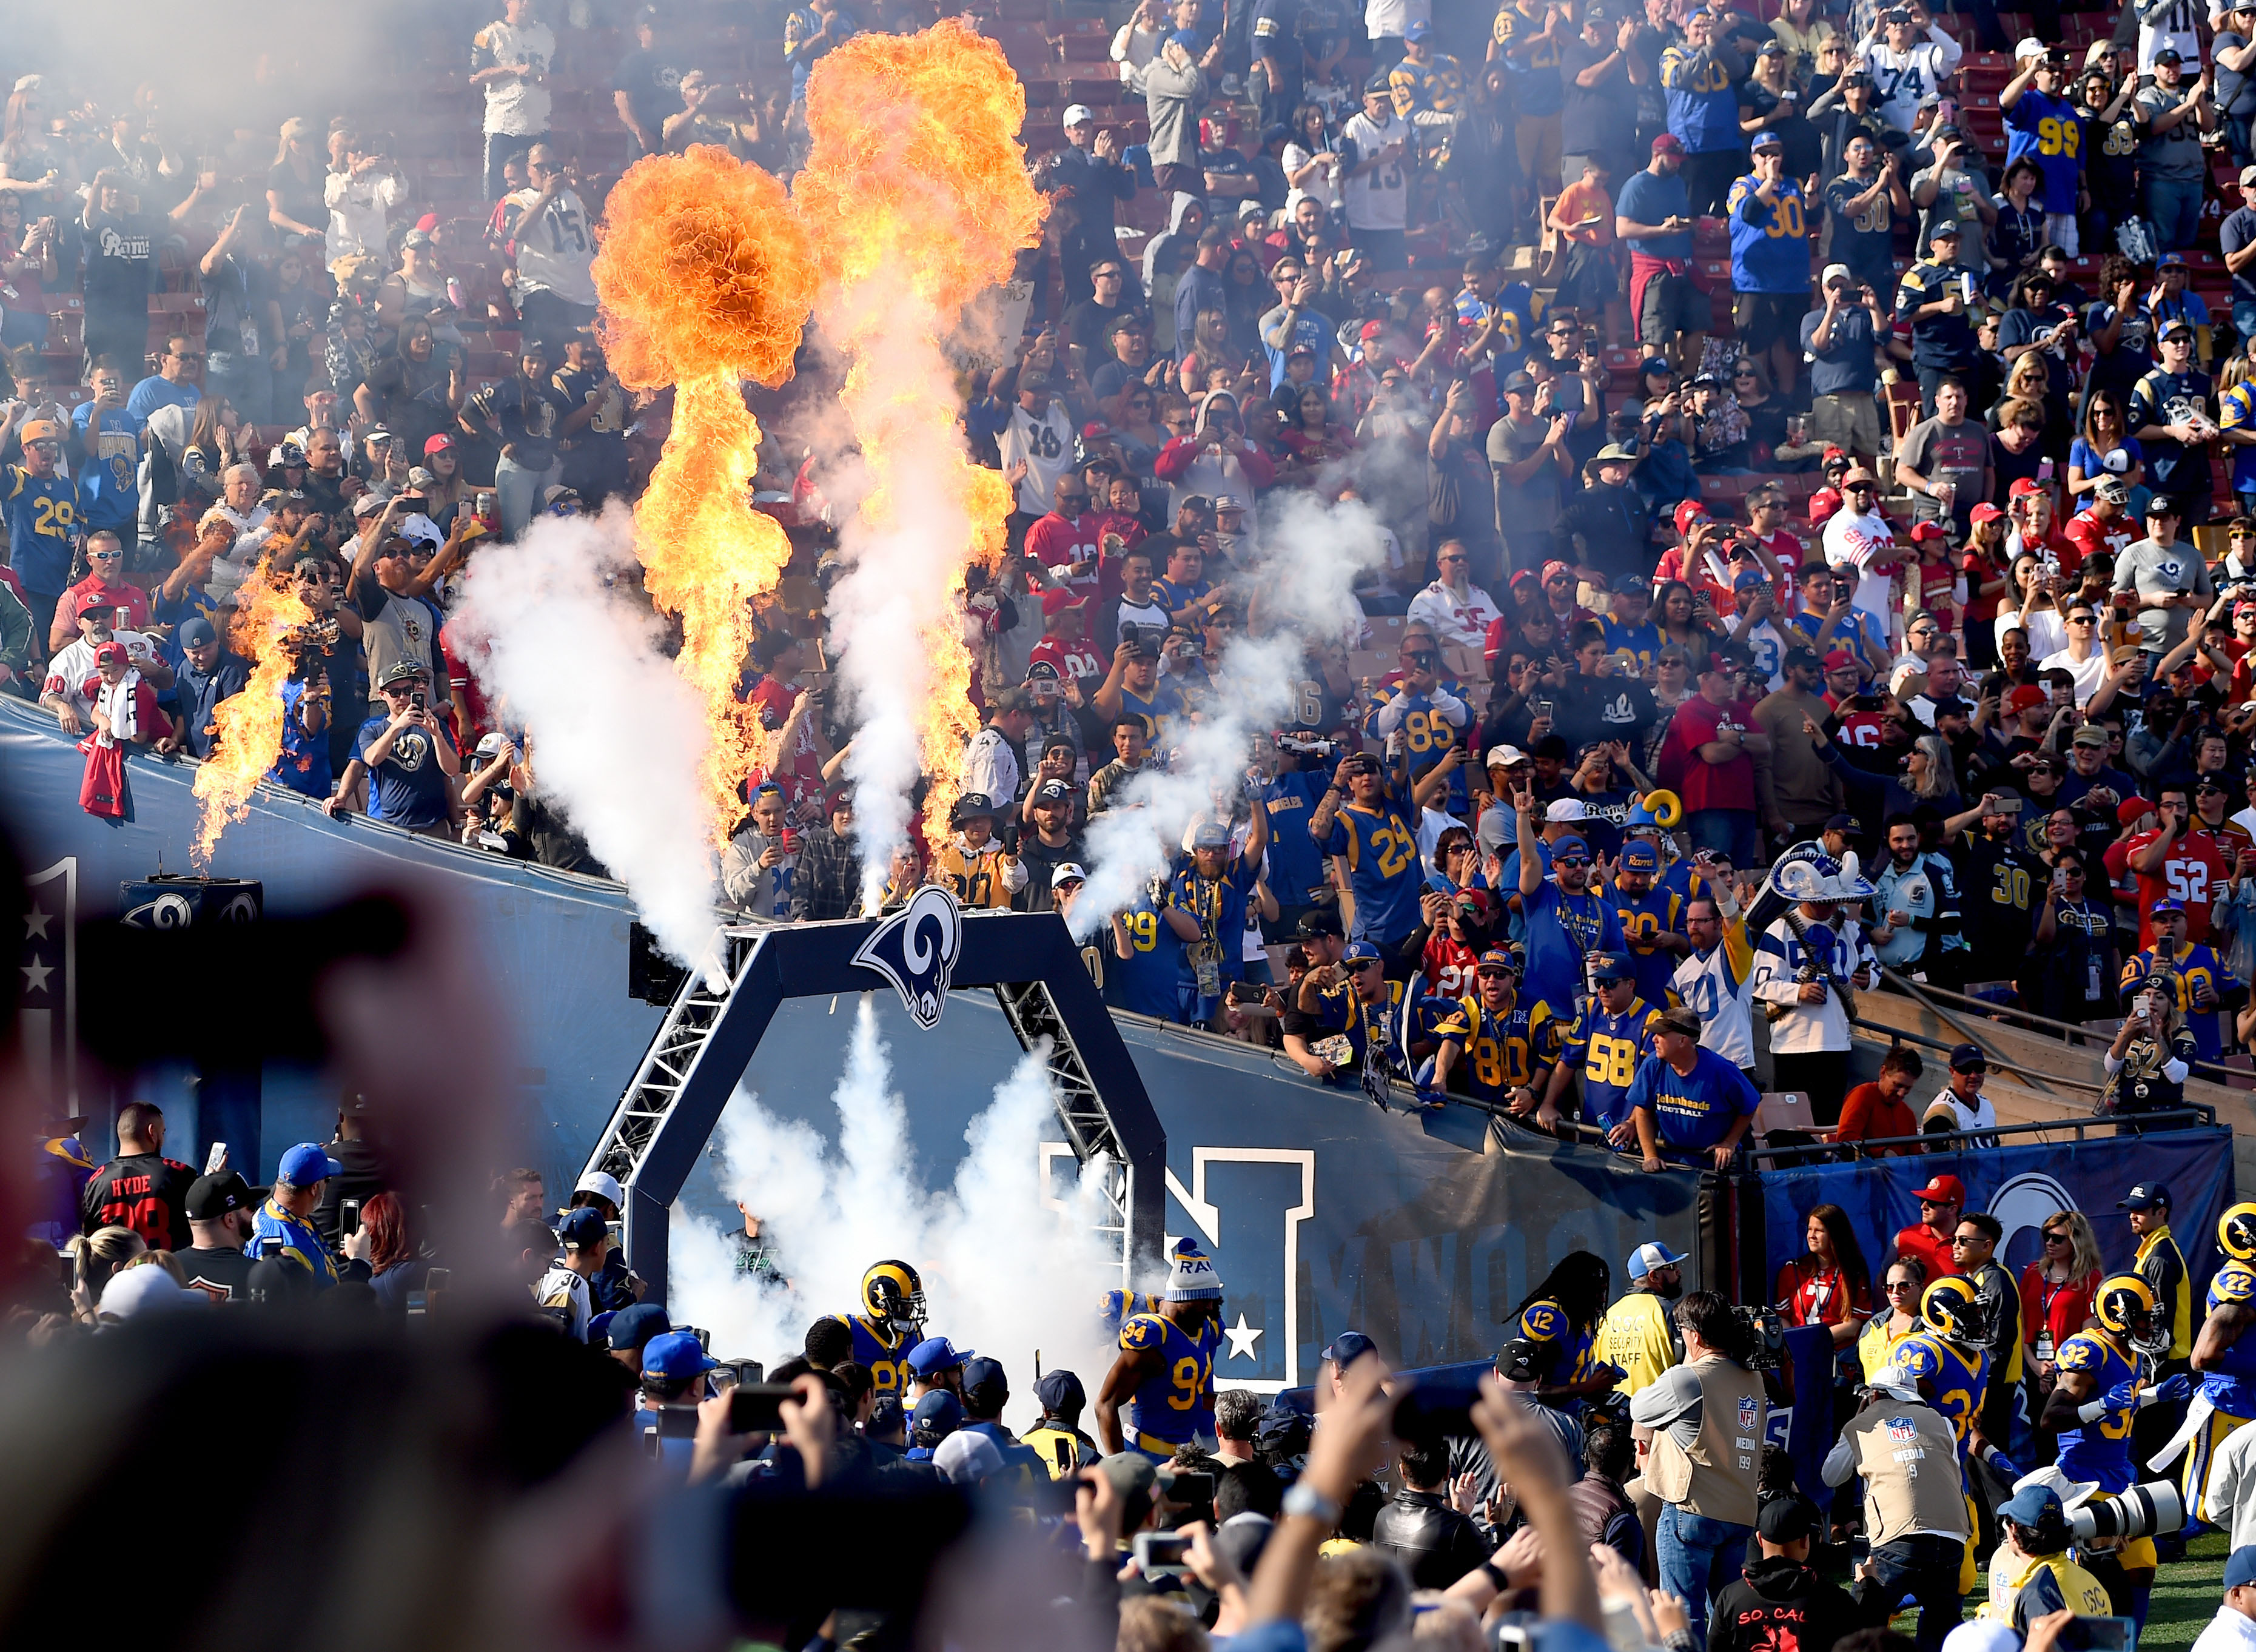 Los Angeles Rams players enter the field against the San Francisco 49ers in Week 17 at the Los Angeles Memorial Coliseum